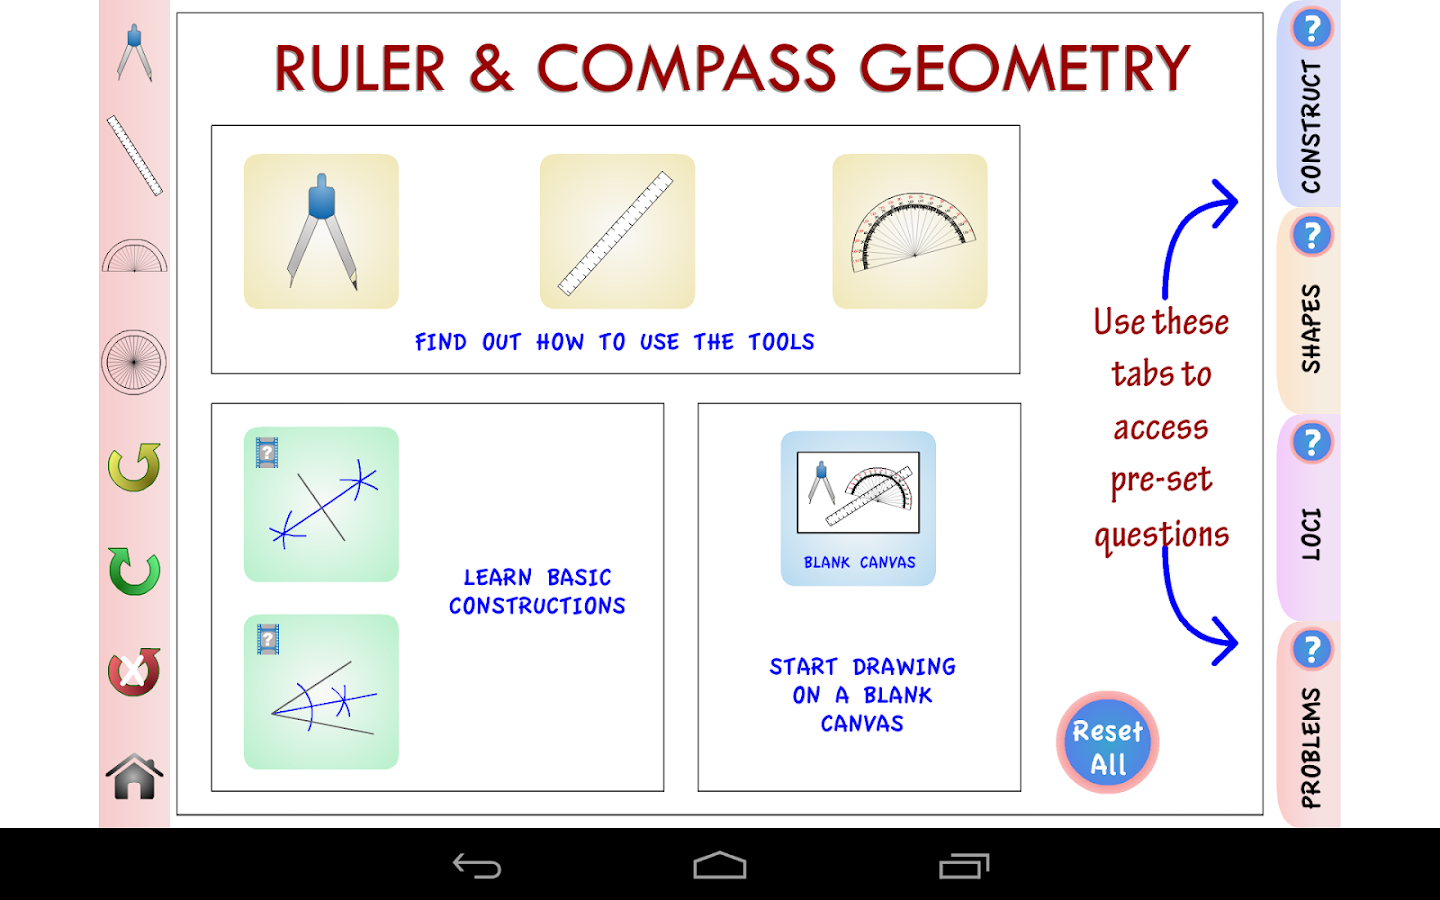 maths teaching guide geometrical constructions Geometry construction reference this guide was originally written for my own geometry students these instructions can be found in most elementary geometry books, but it might be more convenient to have them all in one place, rather than scattered throughout the book.